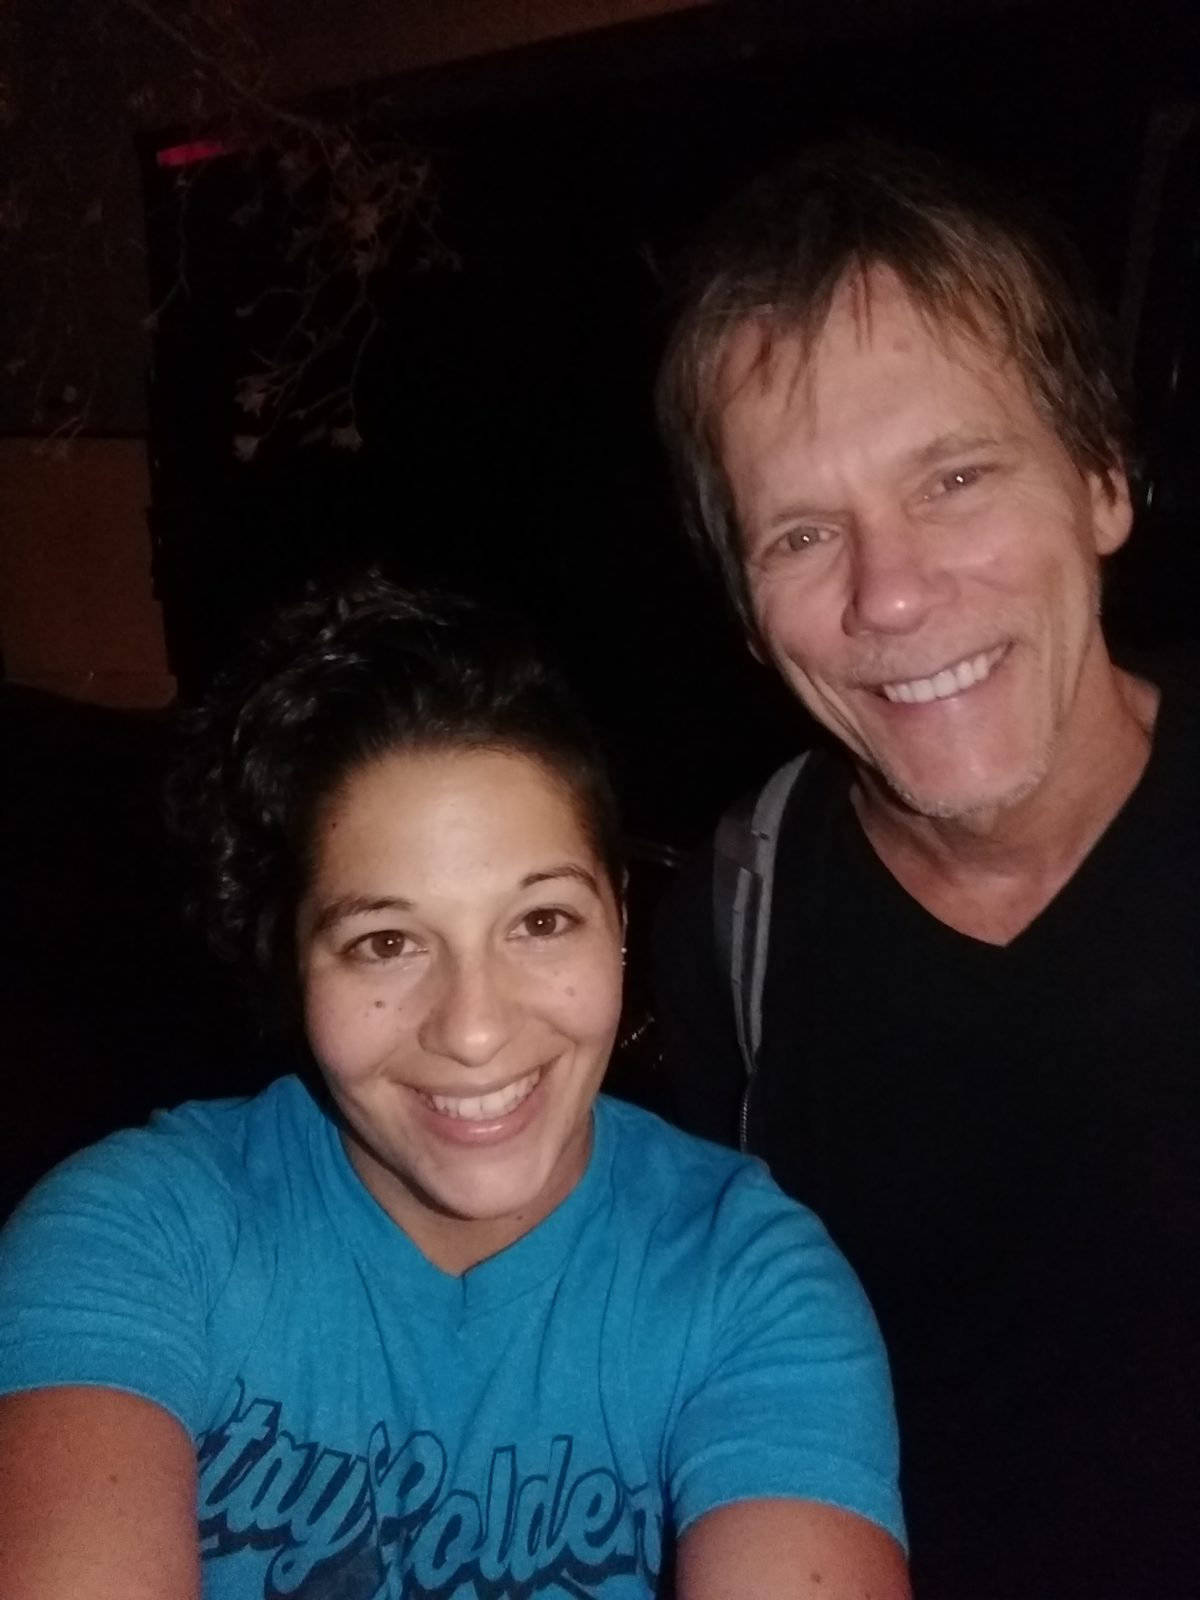 Meeting Kevin Bacon in Cleveland.